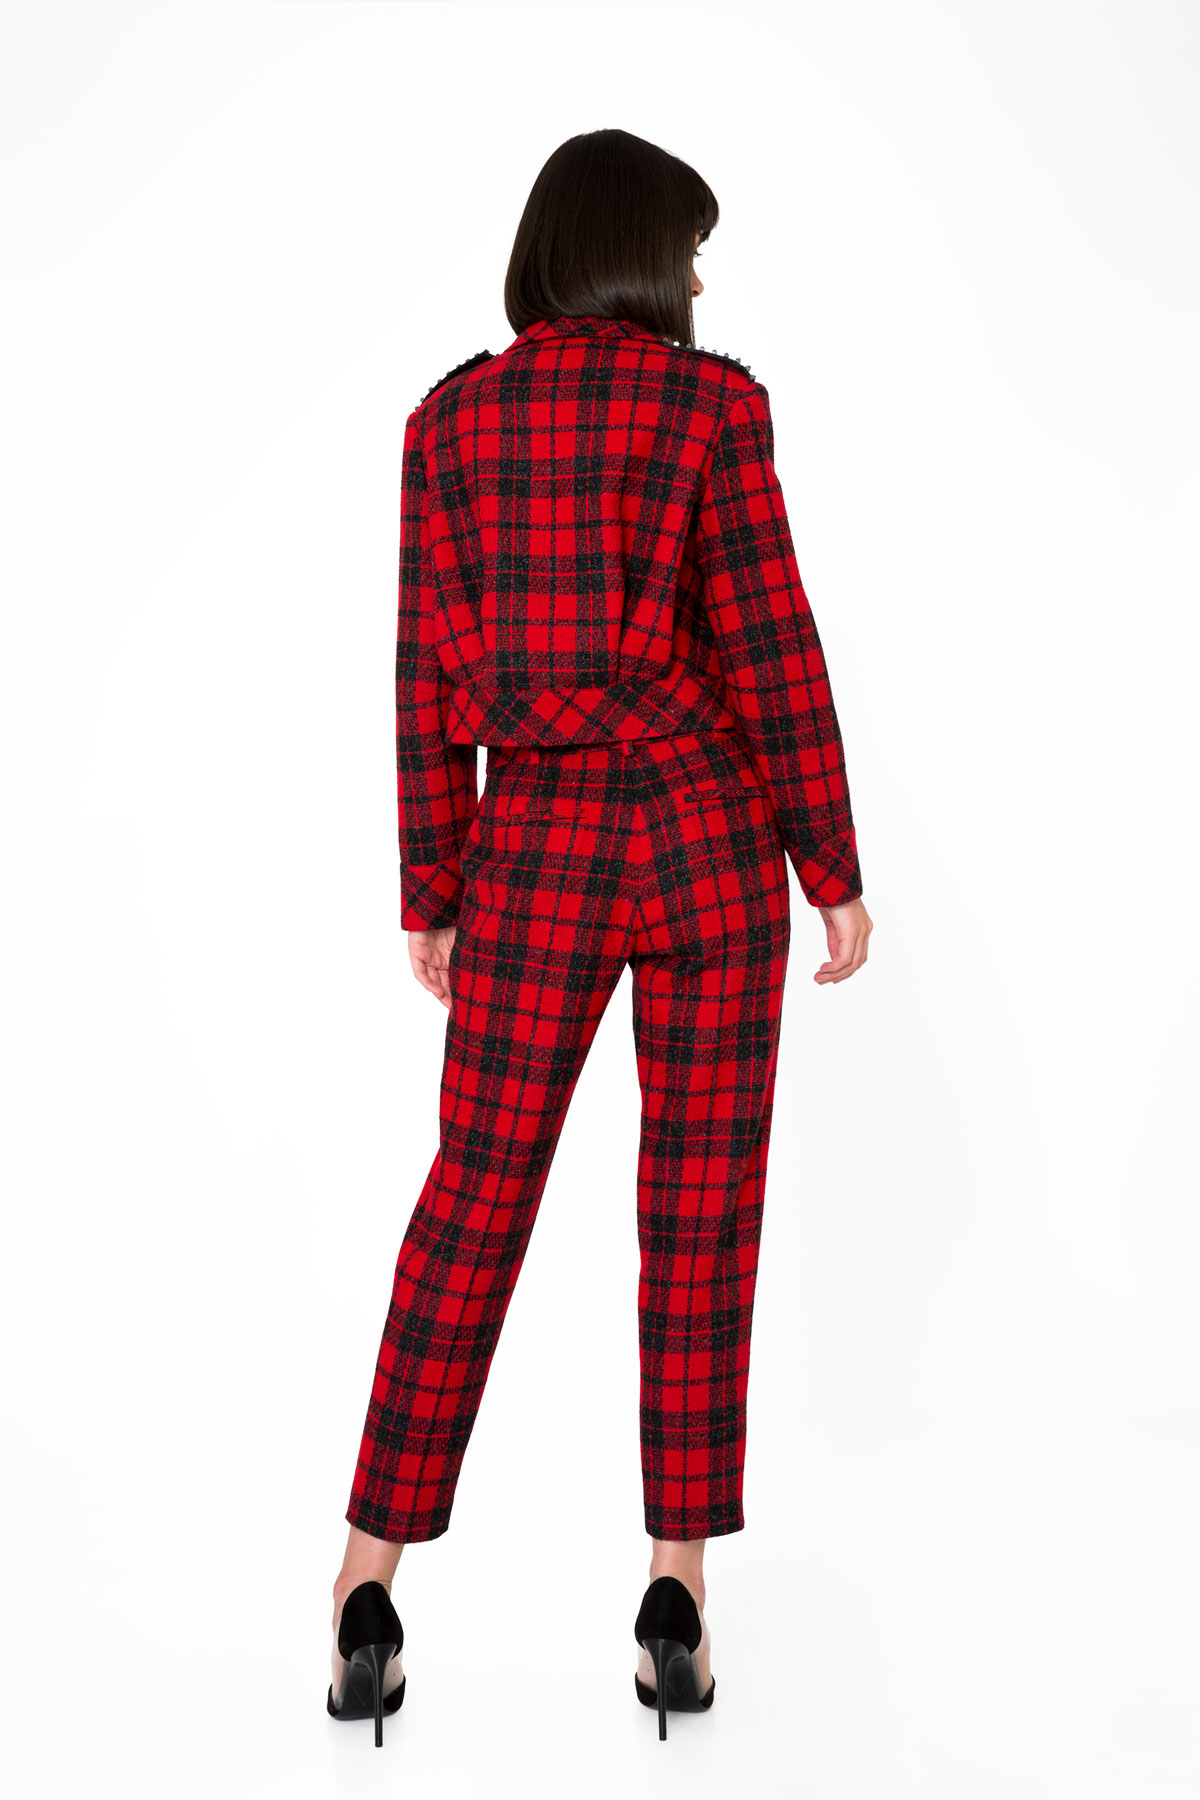 Plaid Patterned Ankle-Length Red Trousers